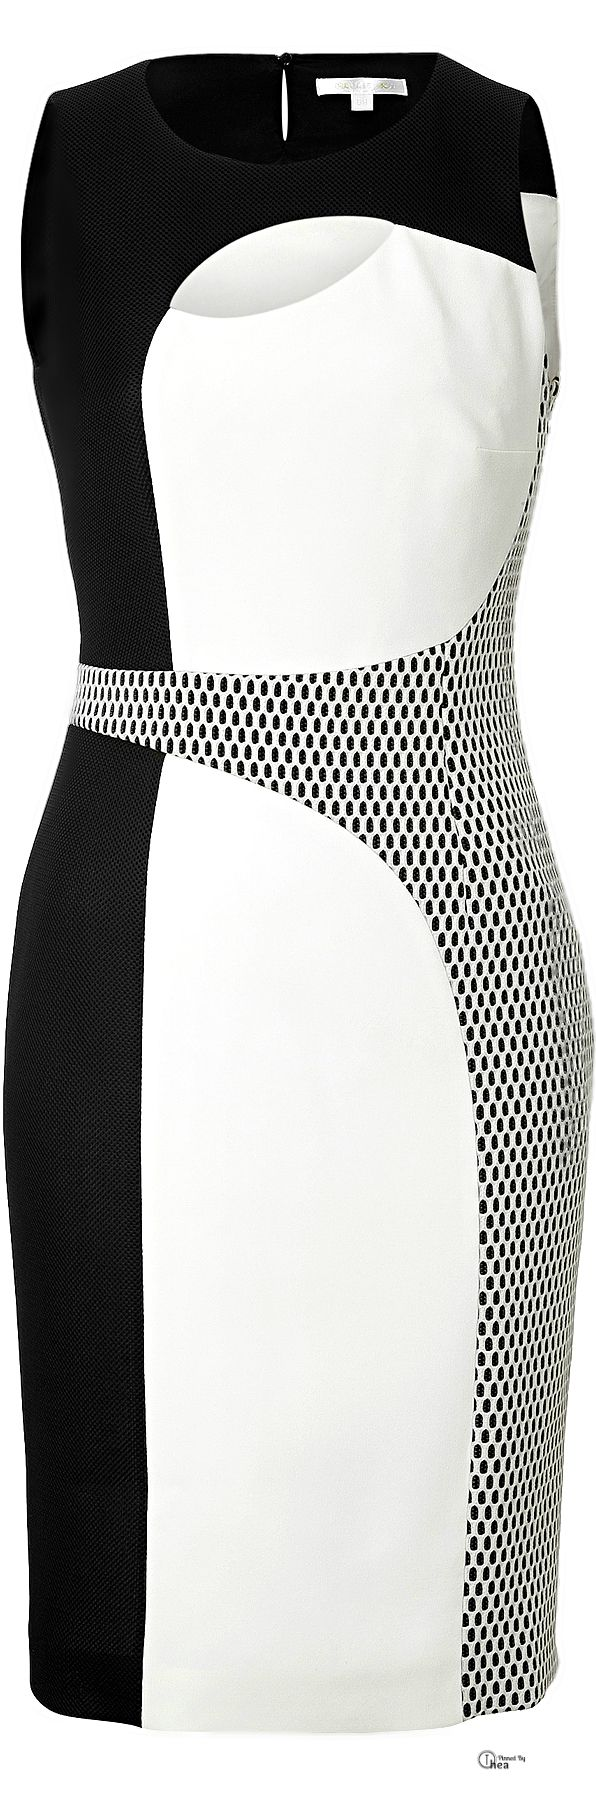 Paule Ka ● Mod black and white colorblock Dress